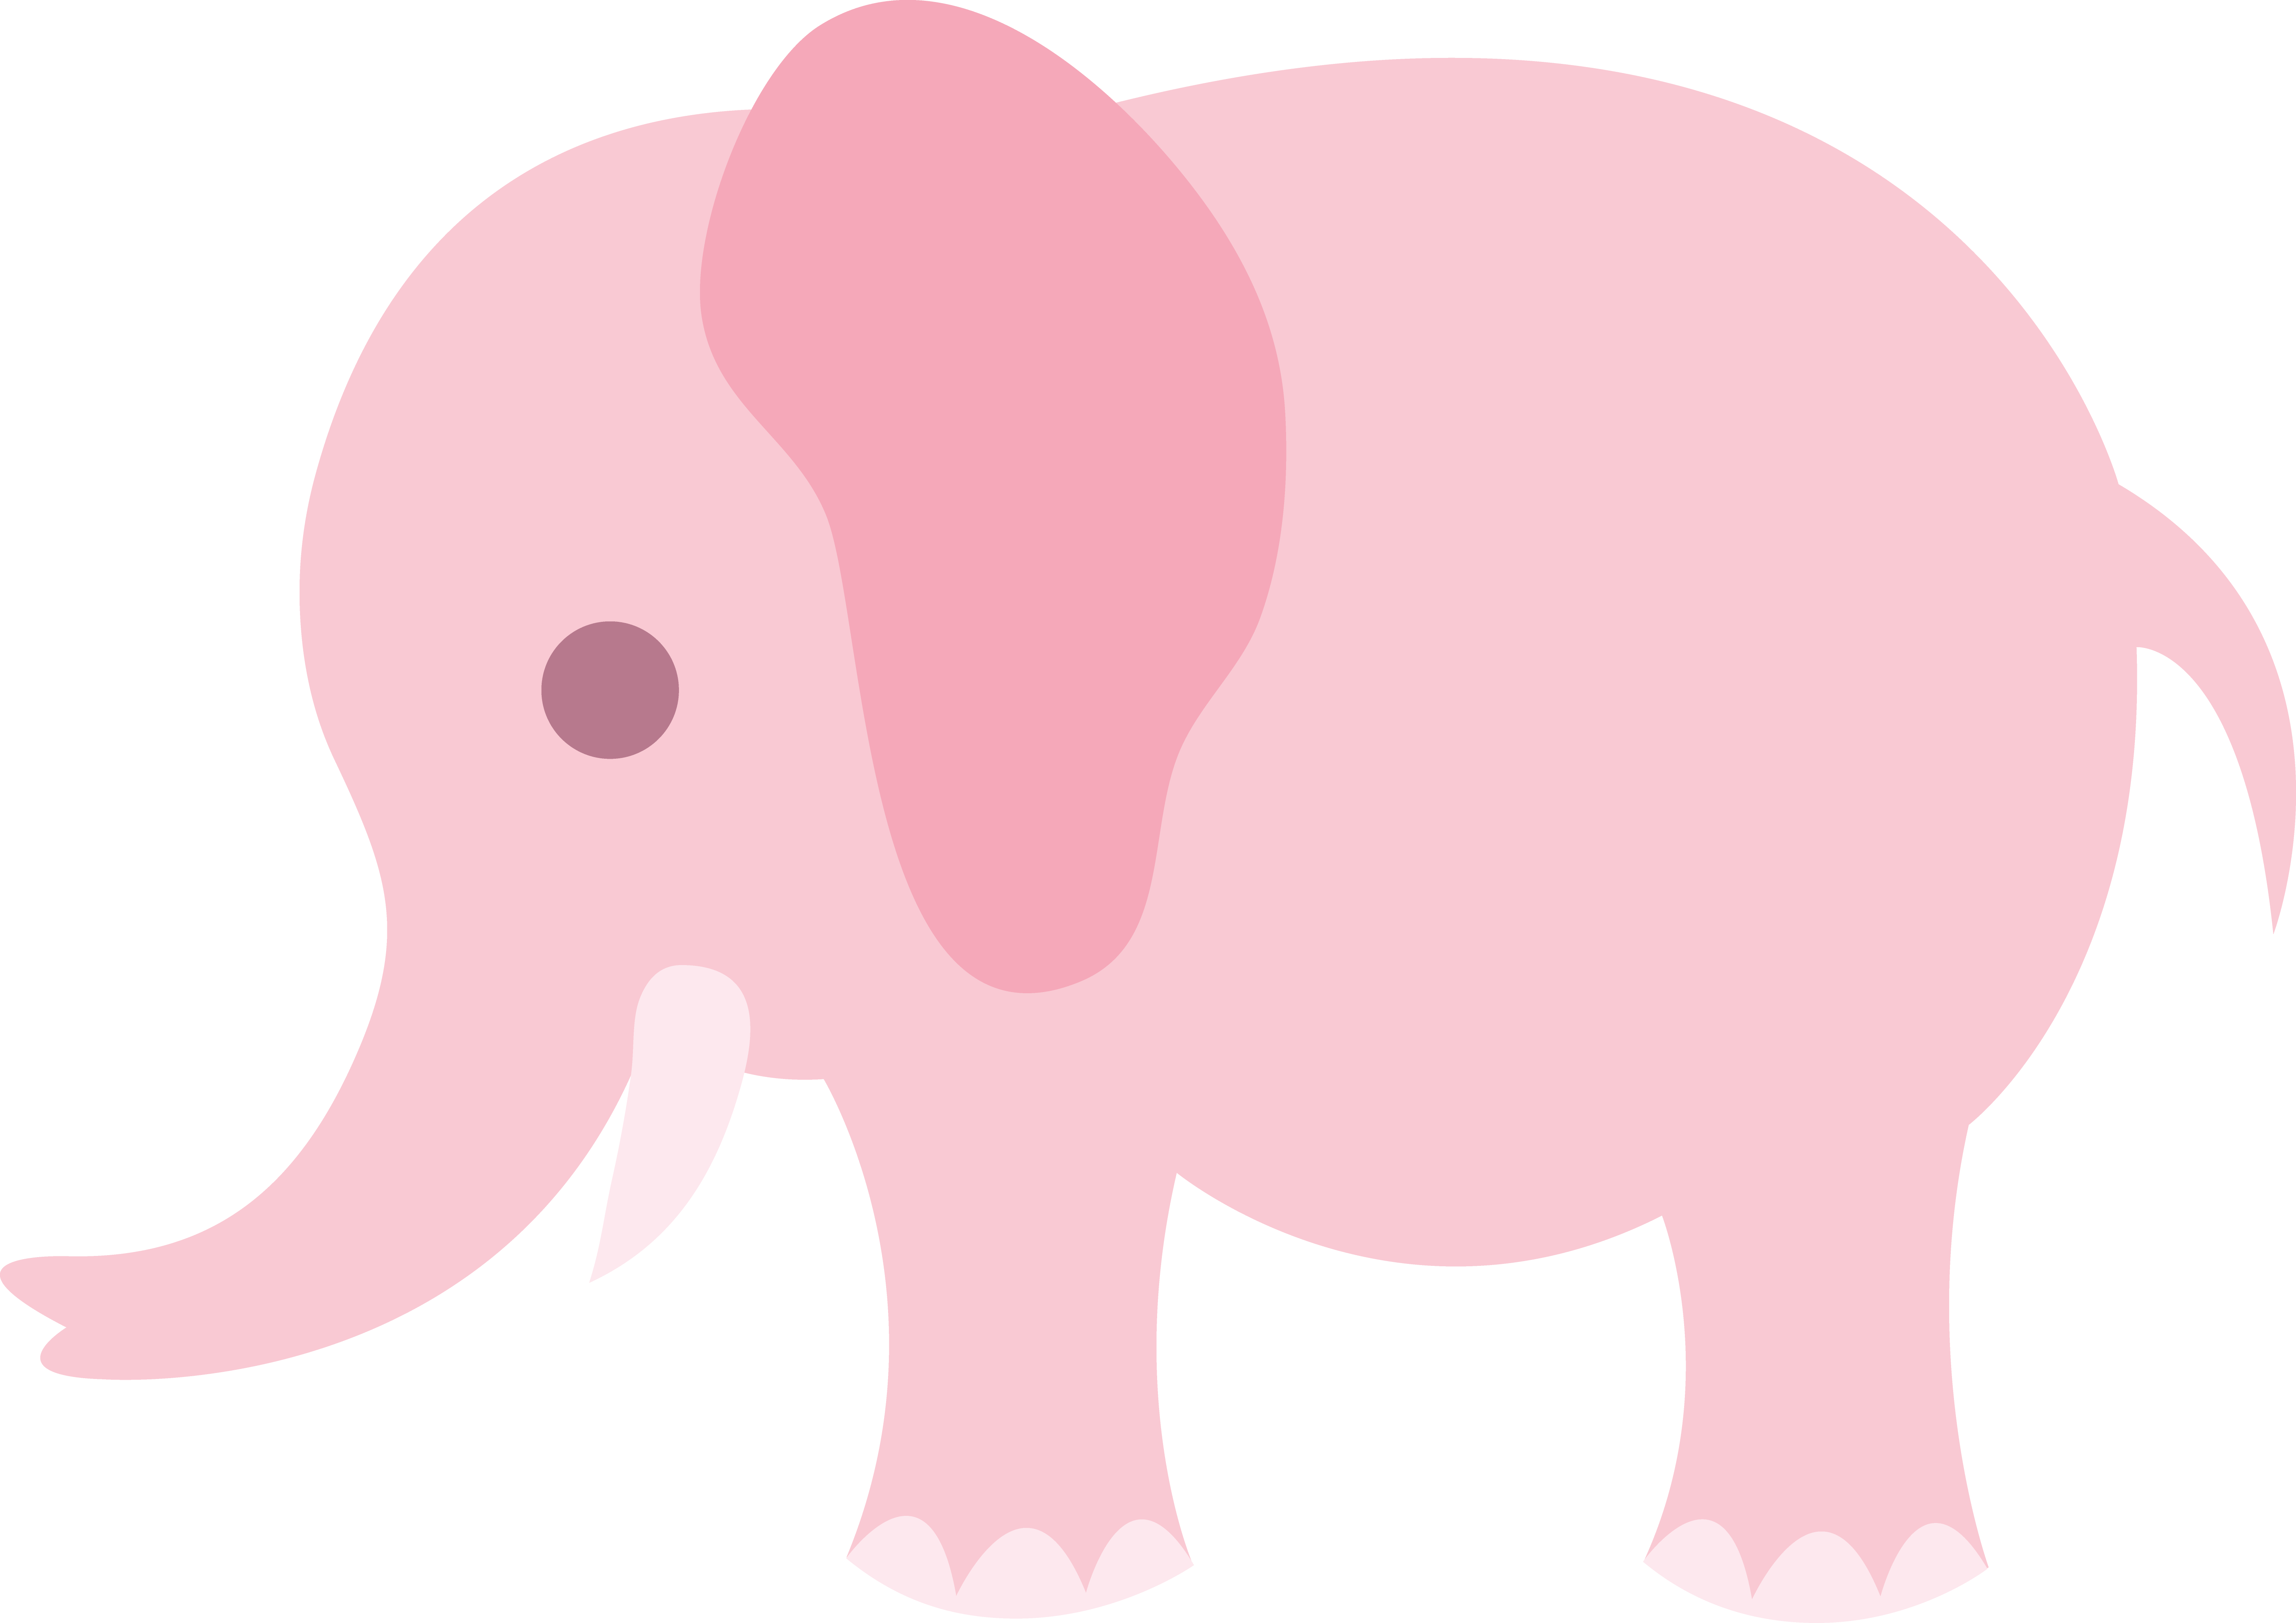 Fisher price baby show elephant clipart.